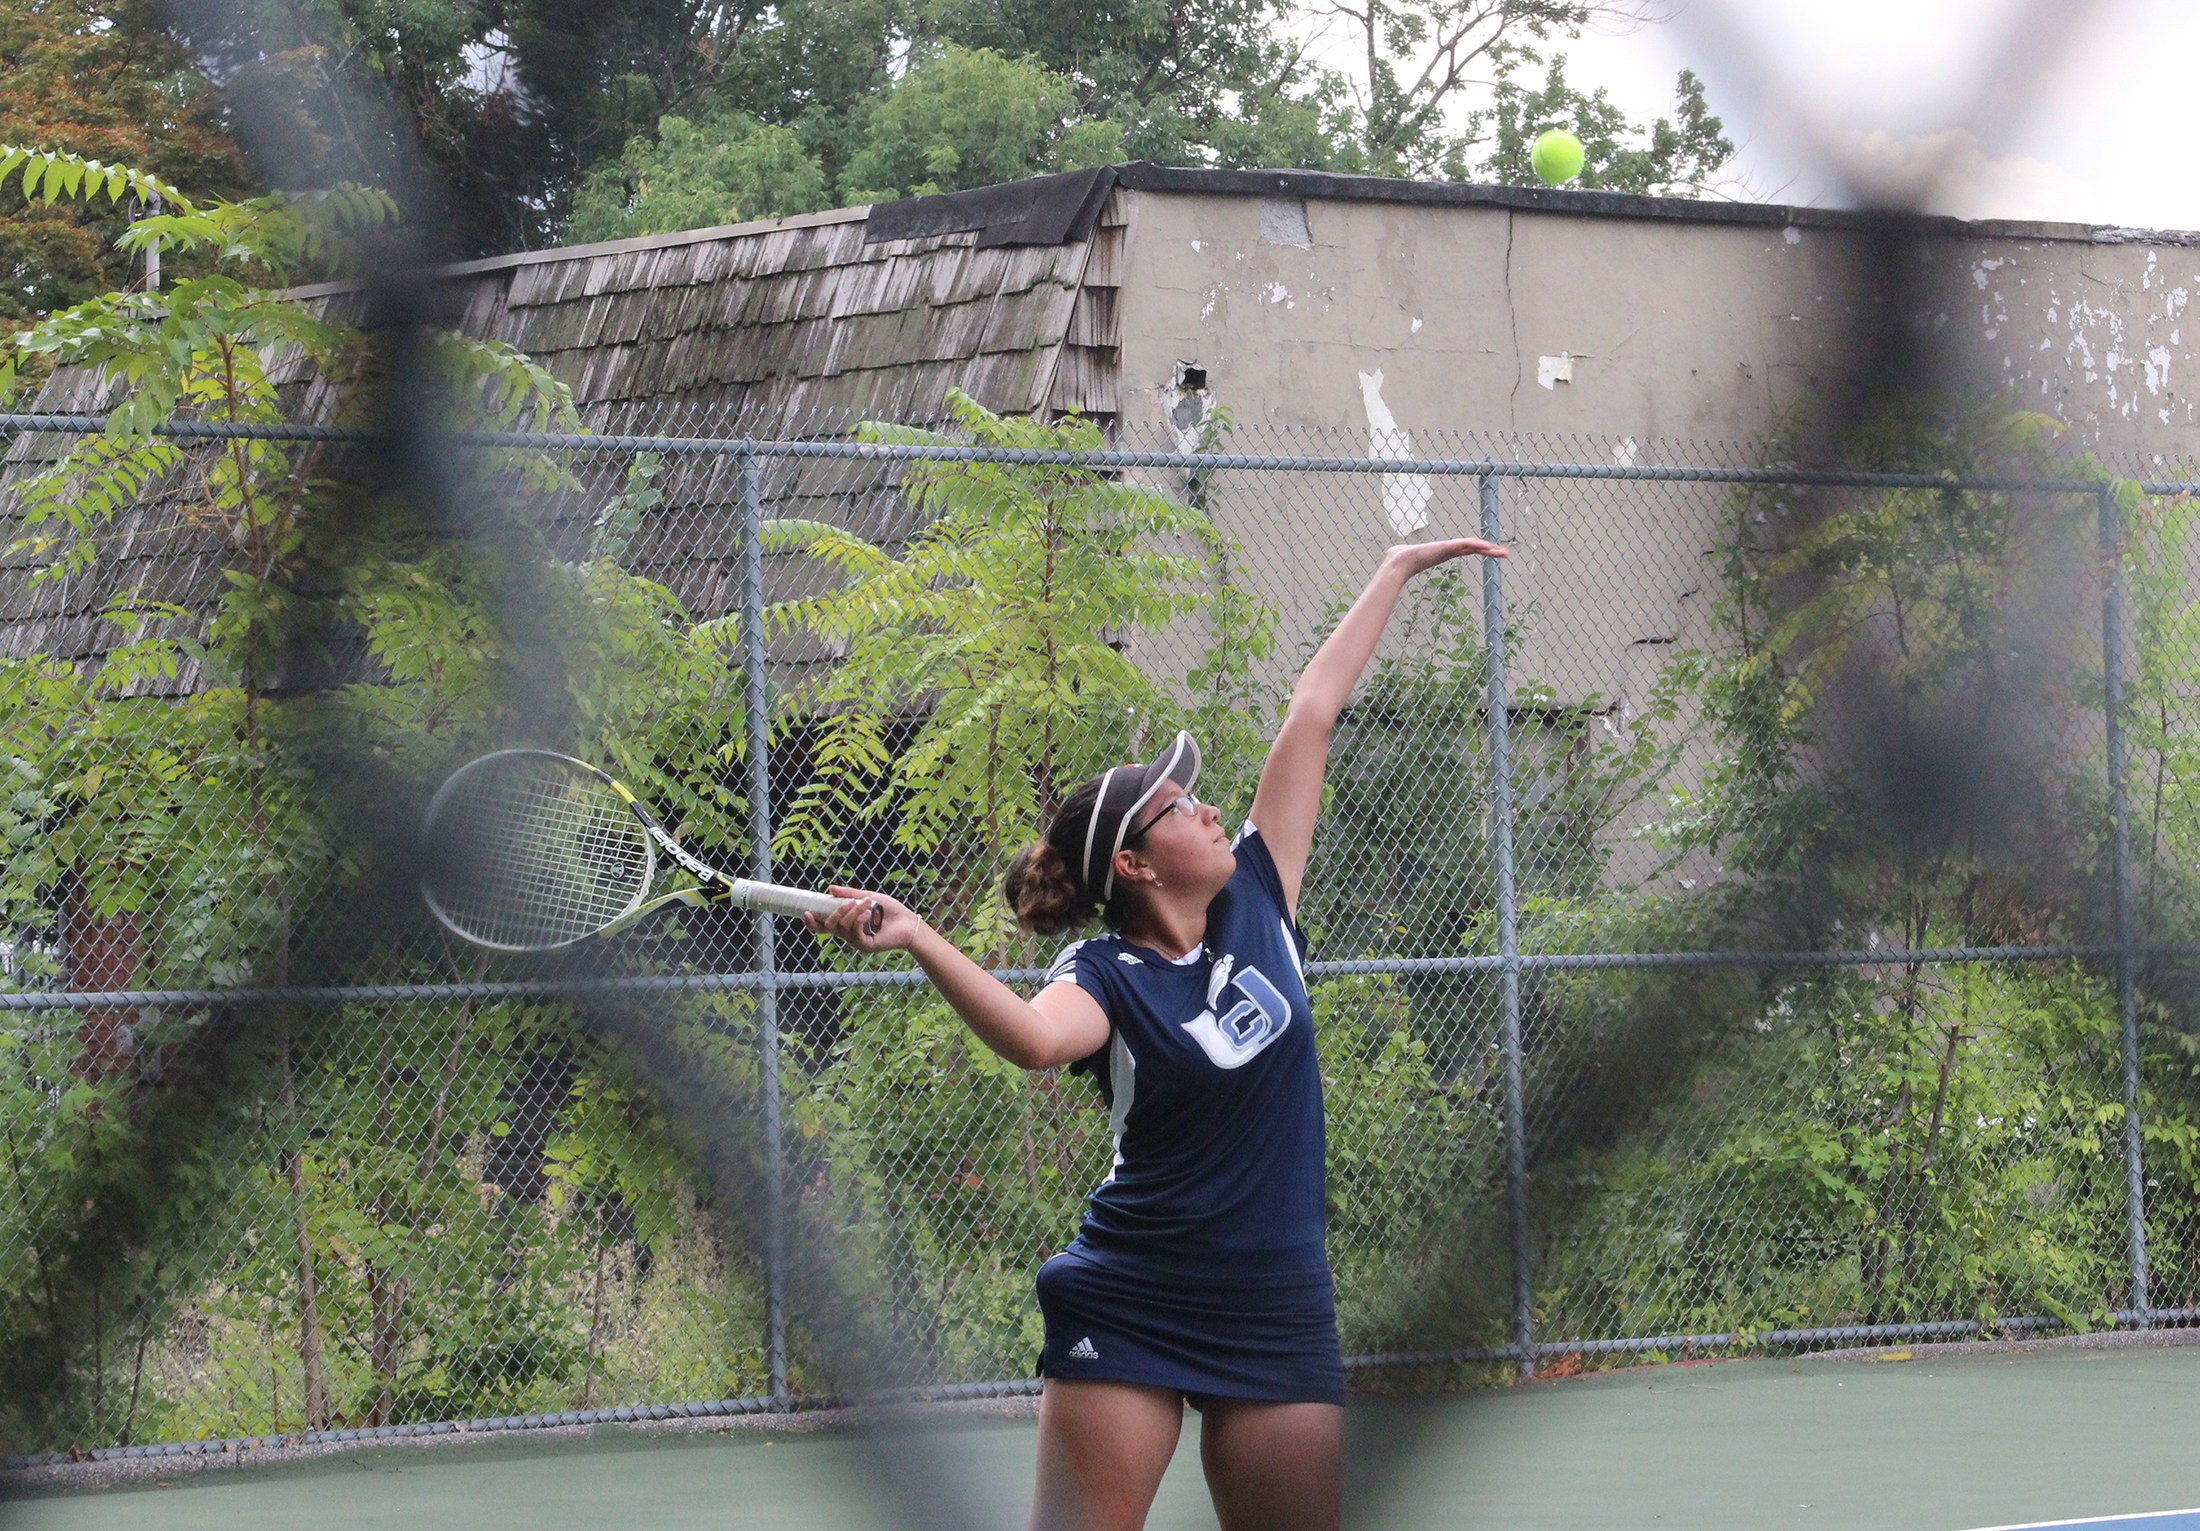 girl tennis serve